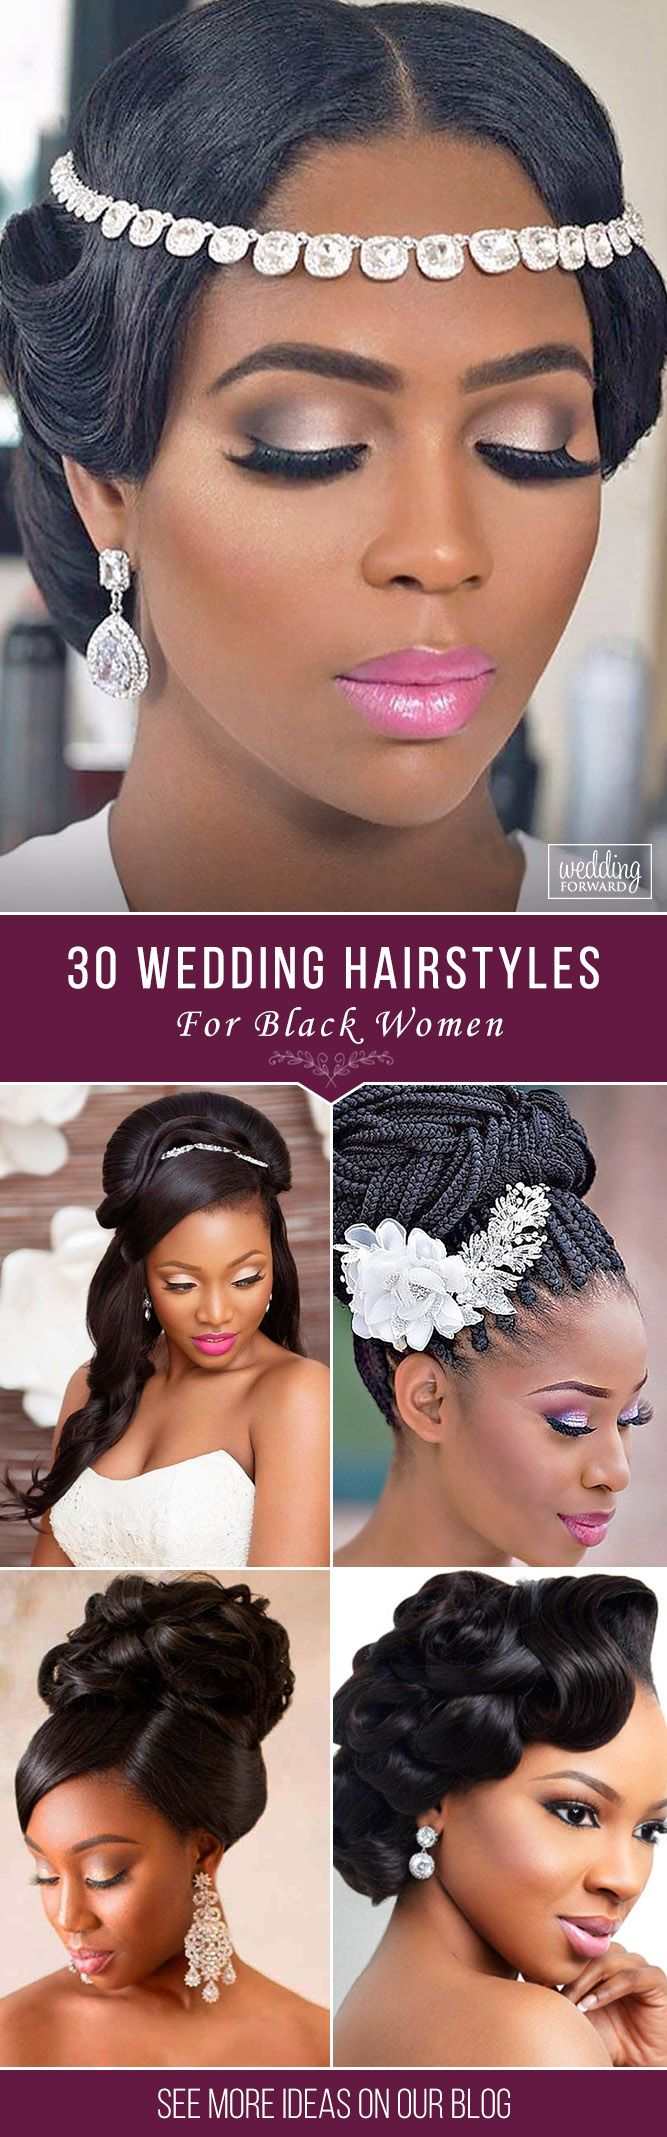 36 Black Women Wedding Hairstyles ❤ It is not a difficult task to pick the sui...